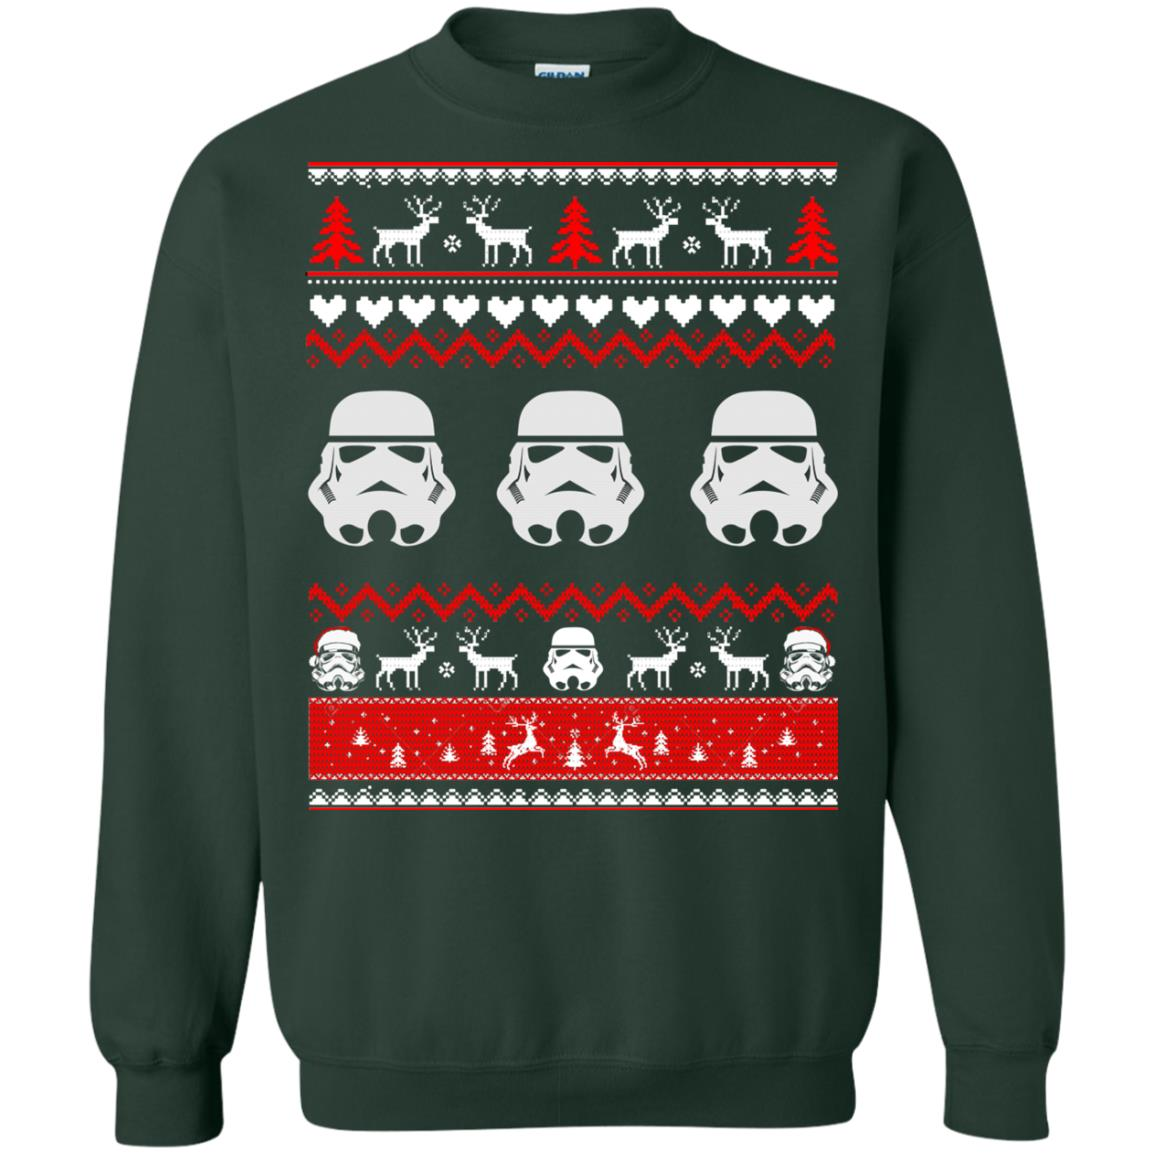 image 1731 - Stormtrooper Star Wars Ugly Christmas Sweatshirt, Shirt